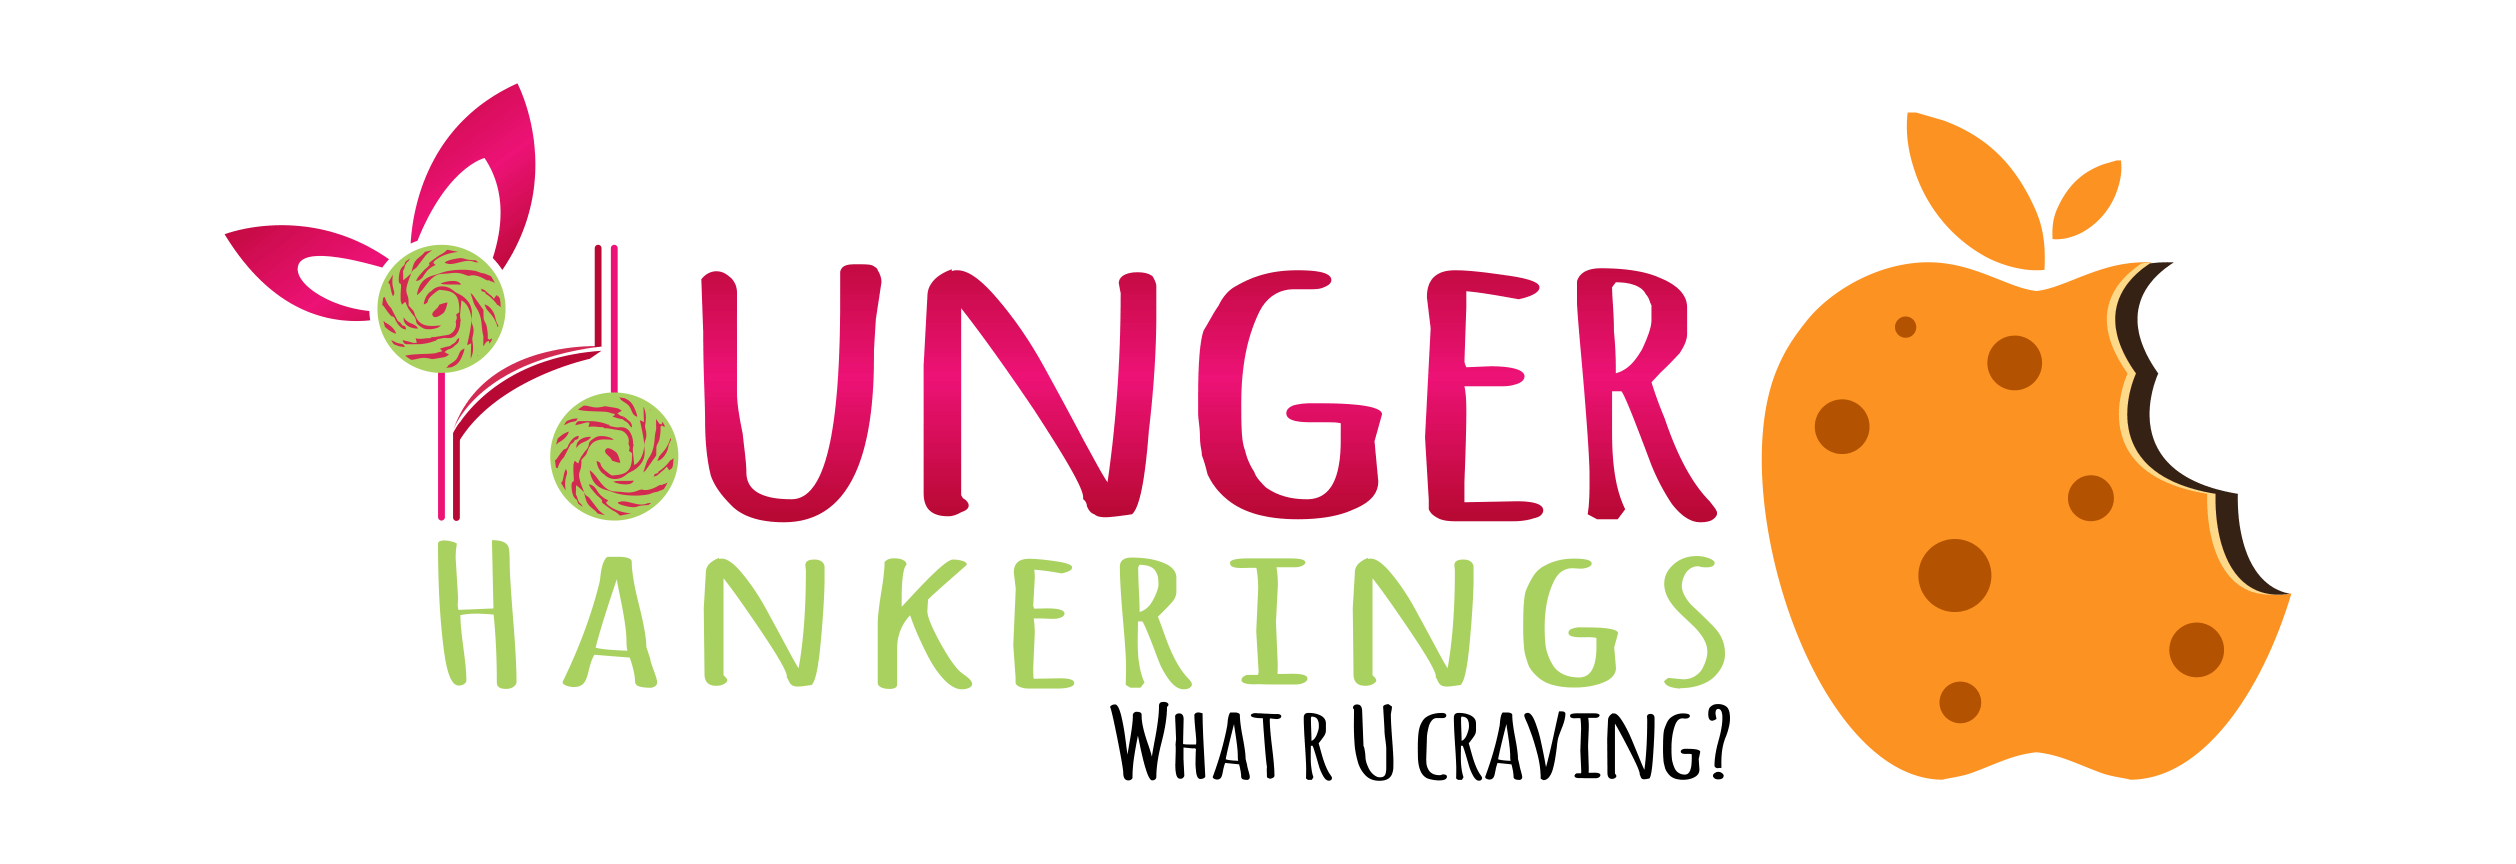 Hunger Hankerings Logo